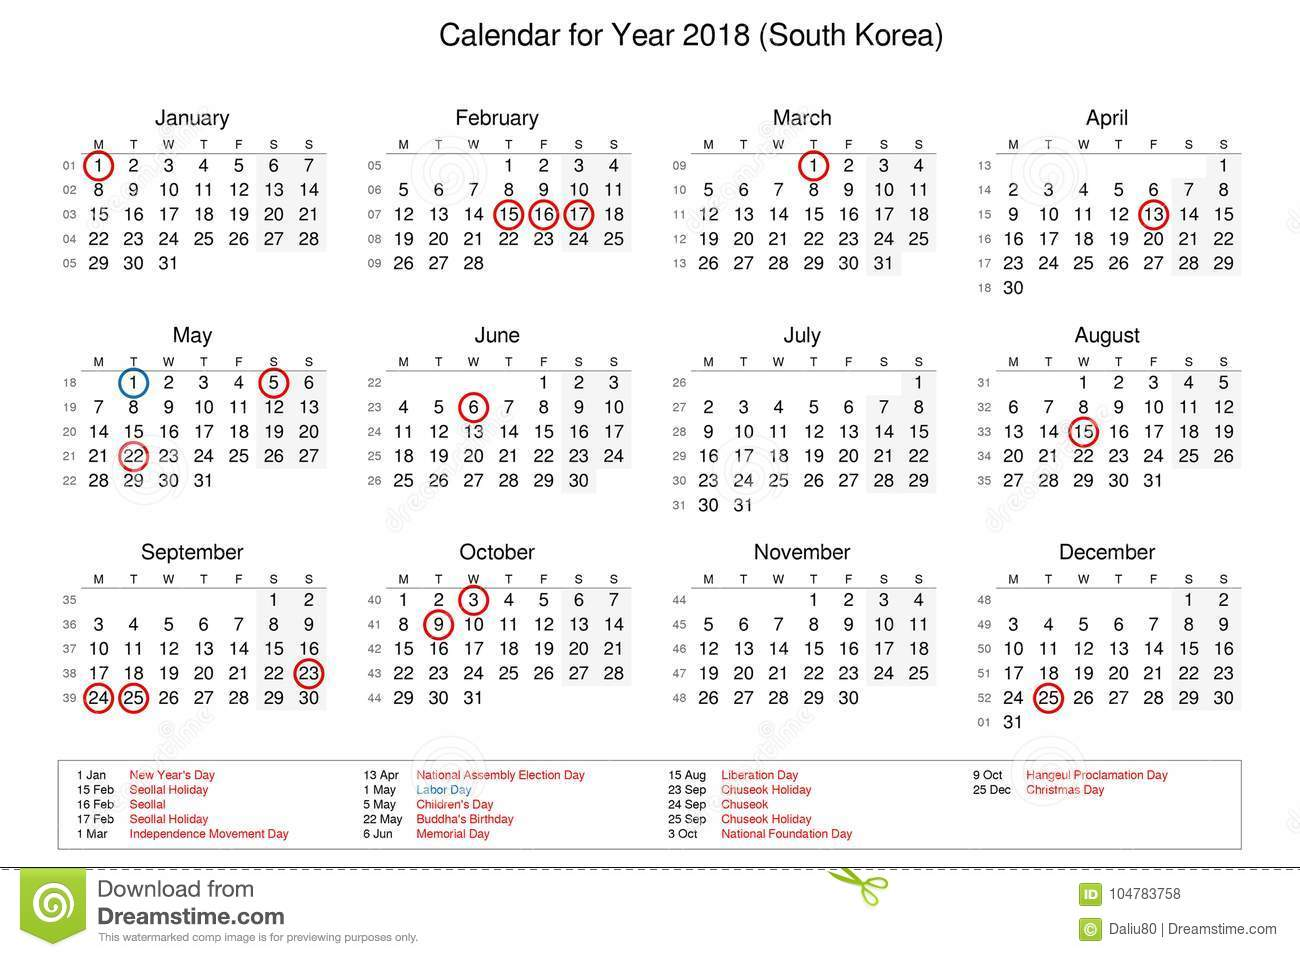 Calendar Of Year 2018 With Public Holidays And Bank Holidays For